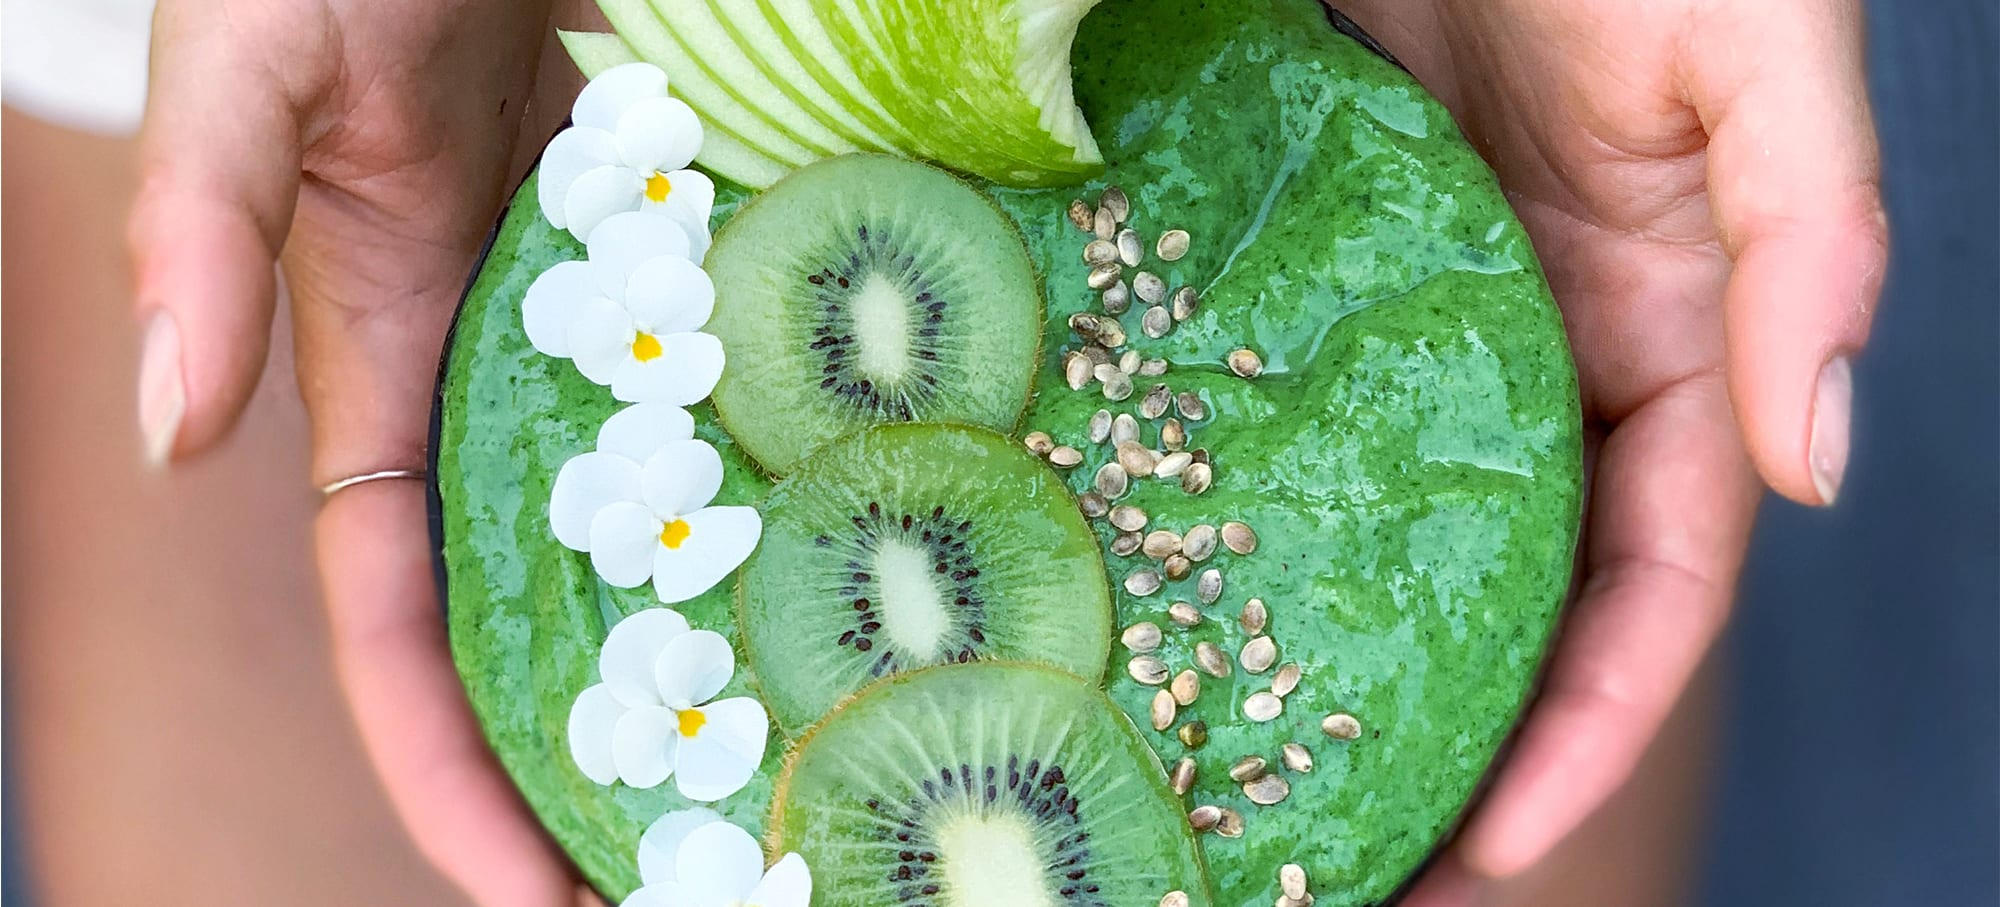 Green life smoothie bowl